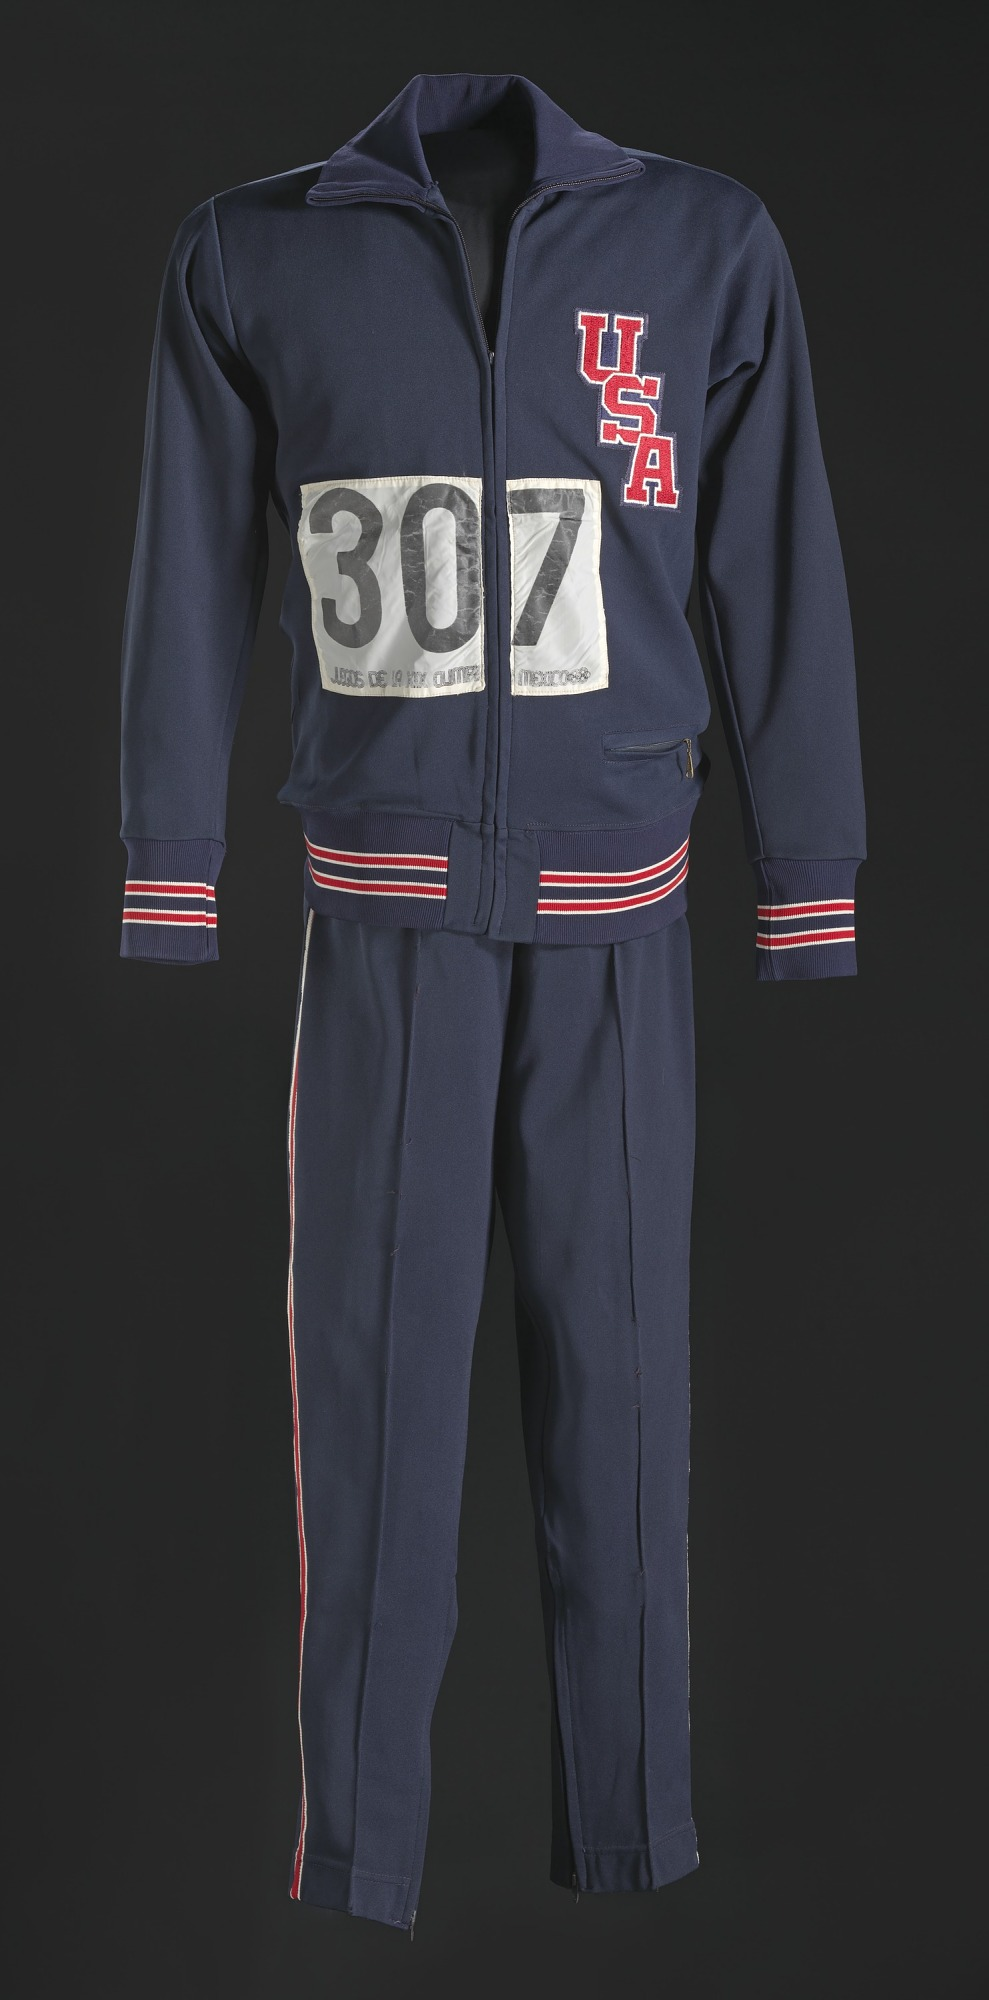 images for Team USA warm-up suit worn by Tommie Smith at 1968 Olympics